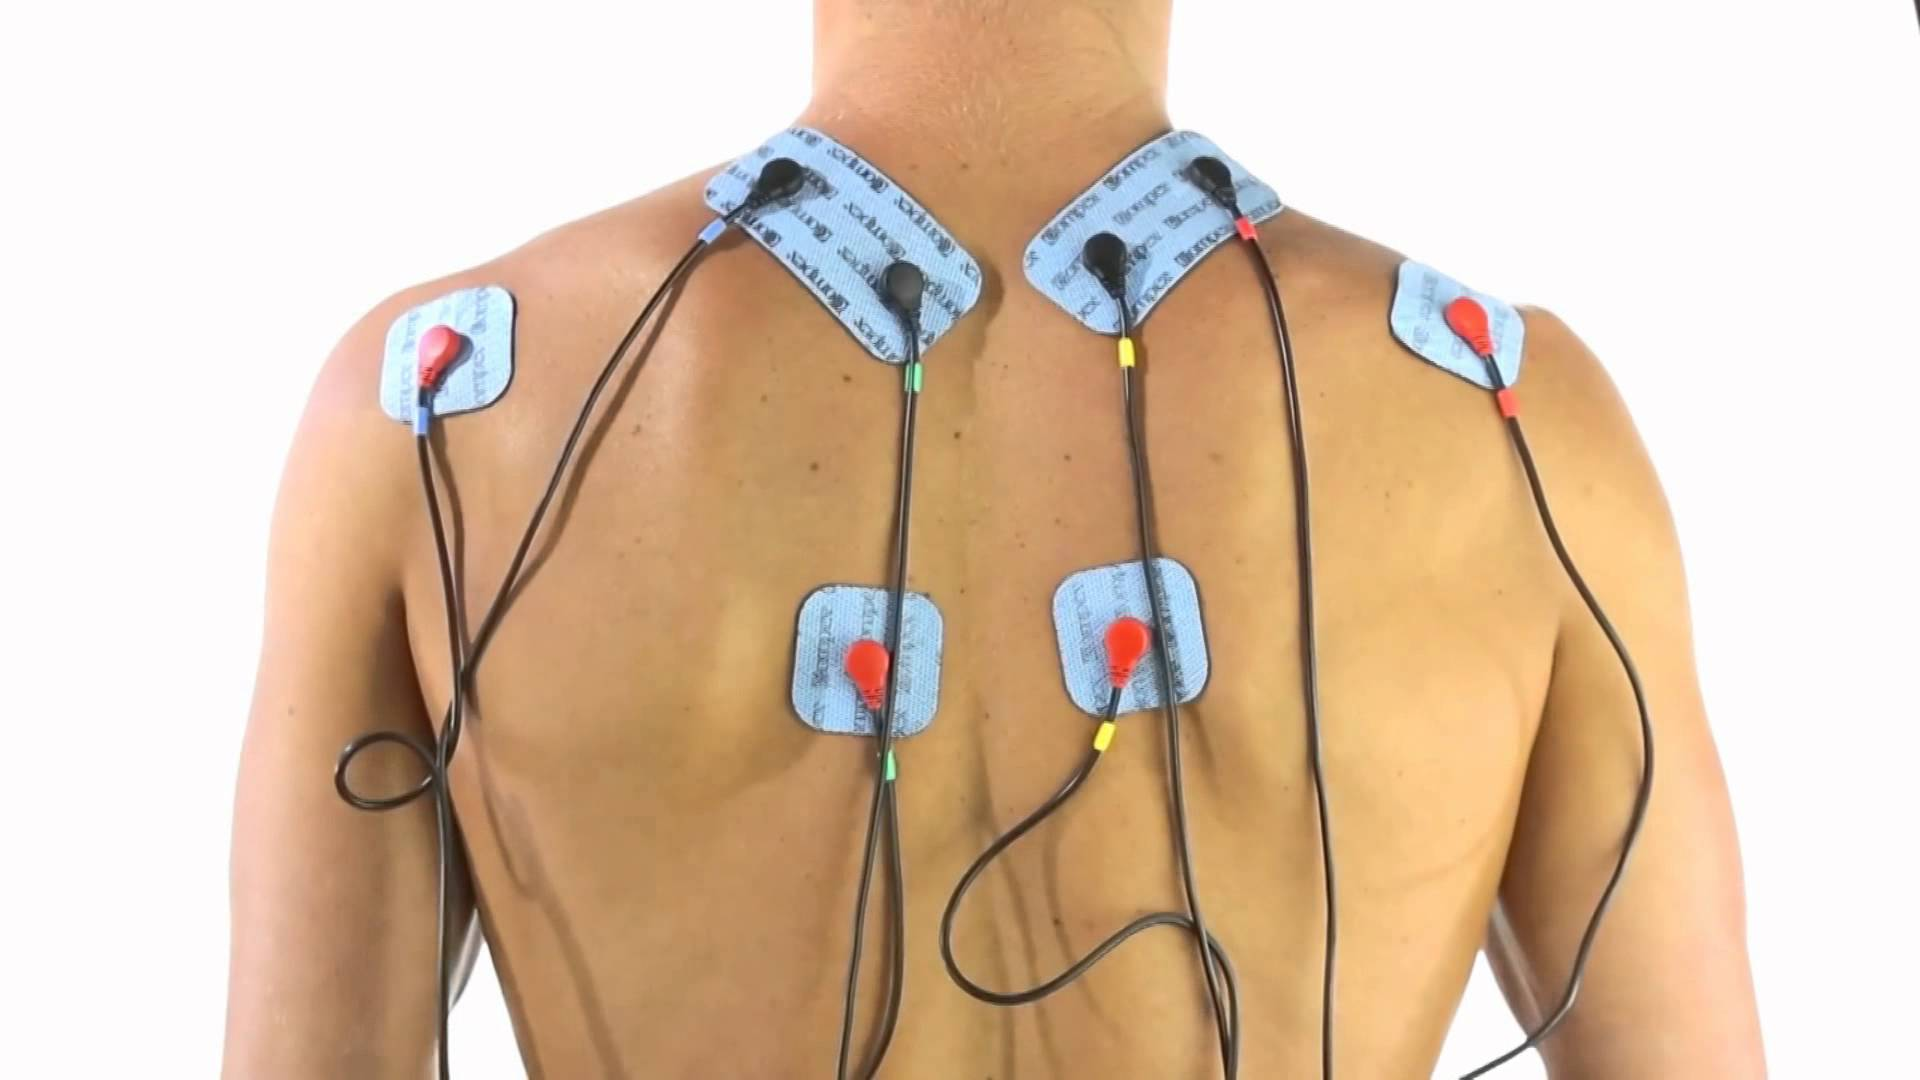 Electrical-Muscle-Stimulation